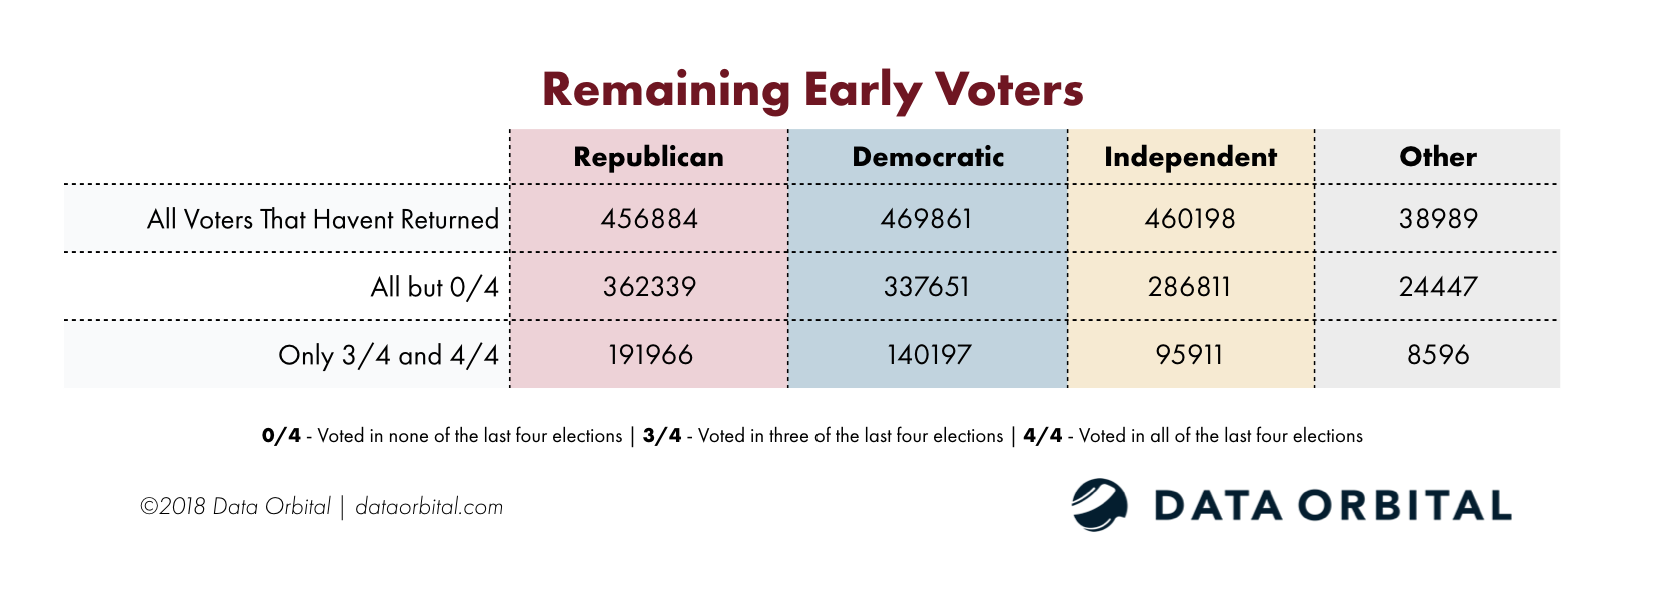 Remaining AZ Early Voters